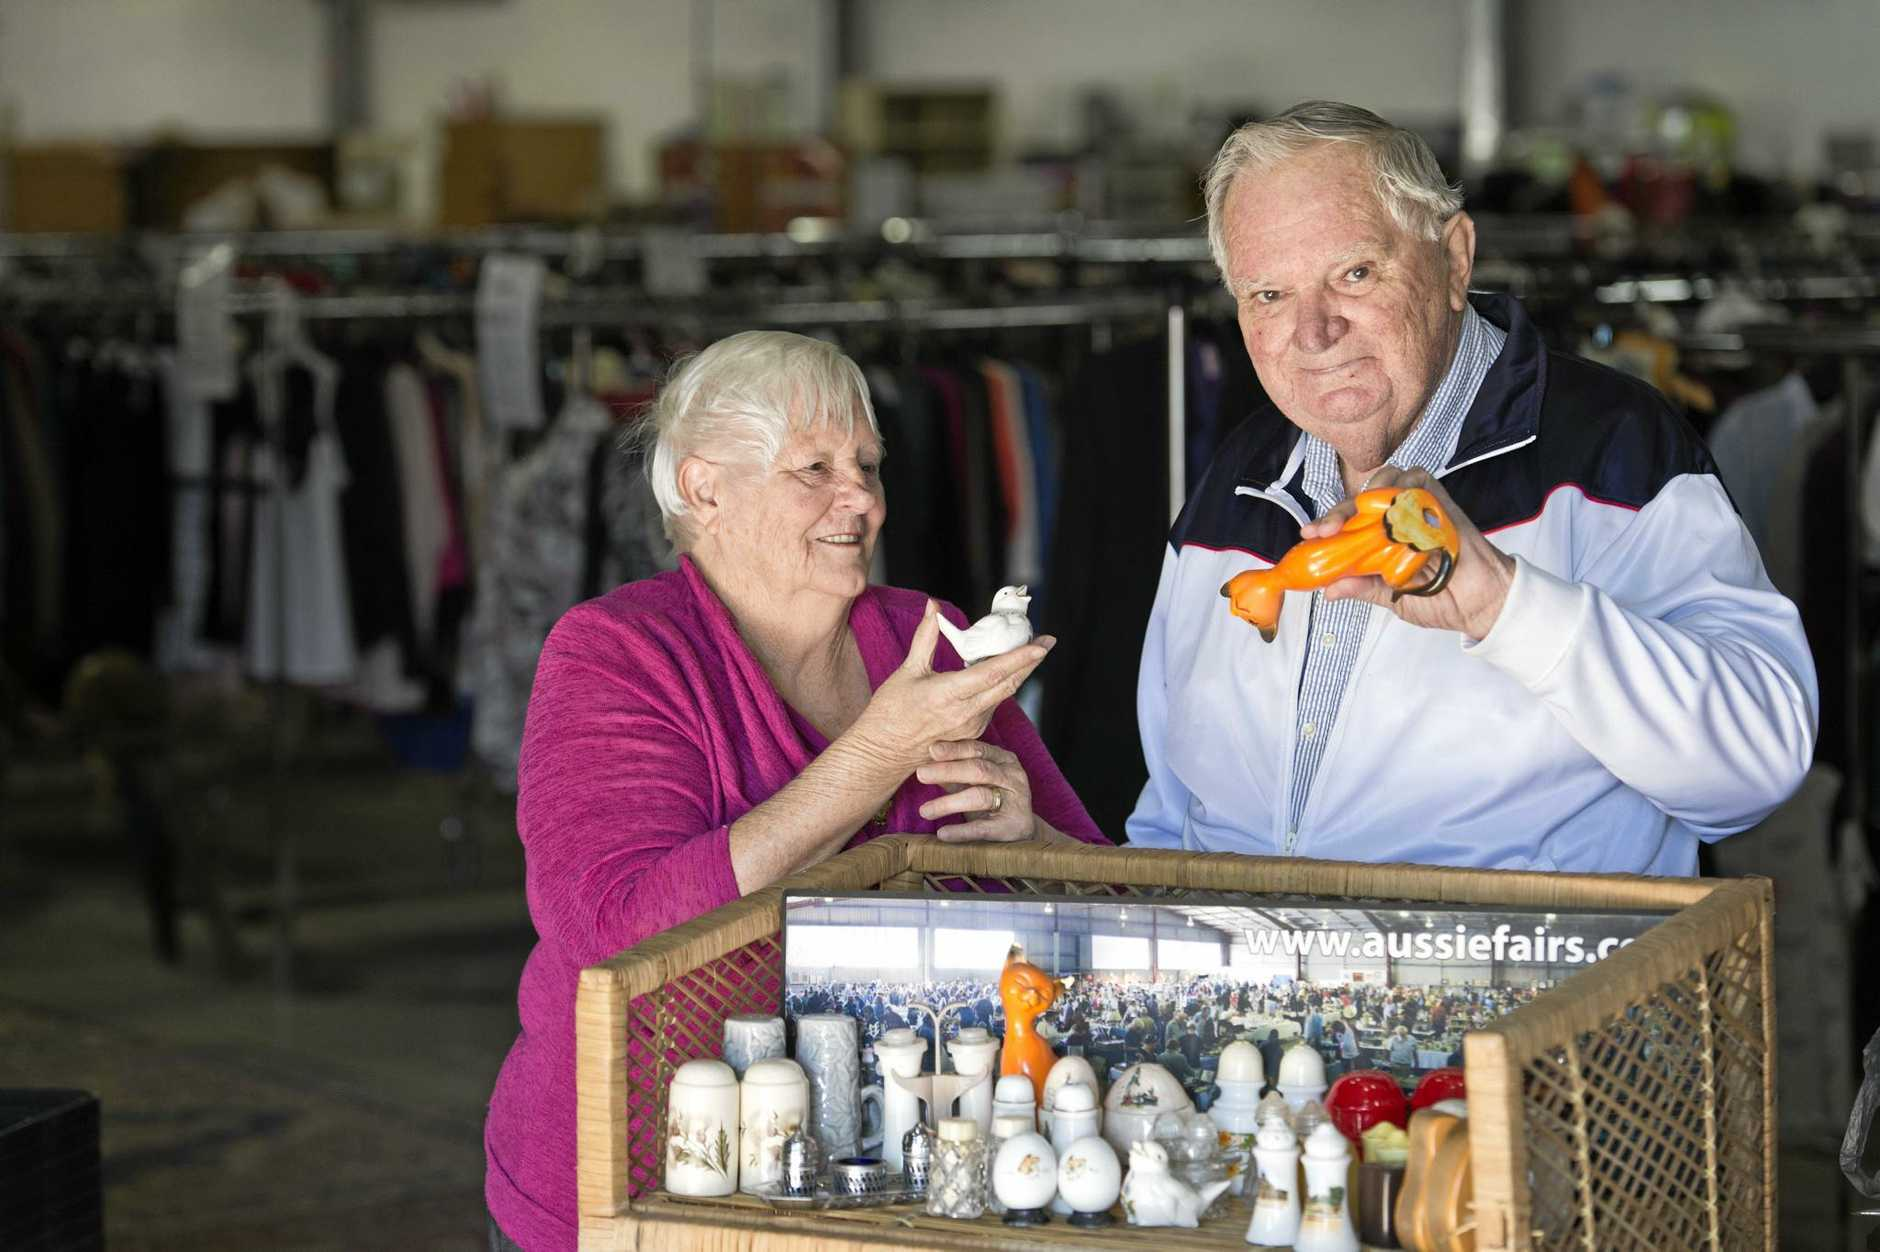 Joyce and Allan Lawson have been collecting salt and pepper shakers from all over Australia for over 30 years.